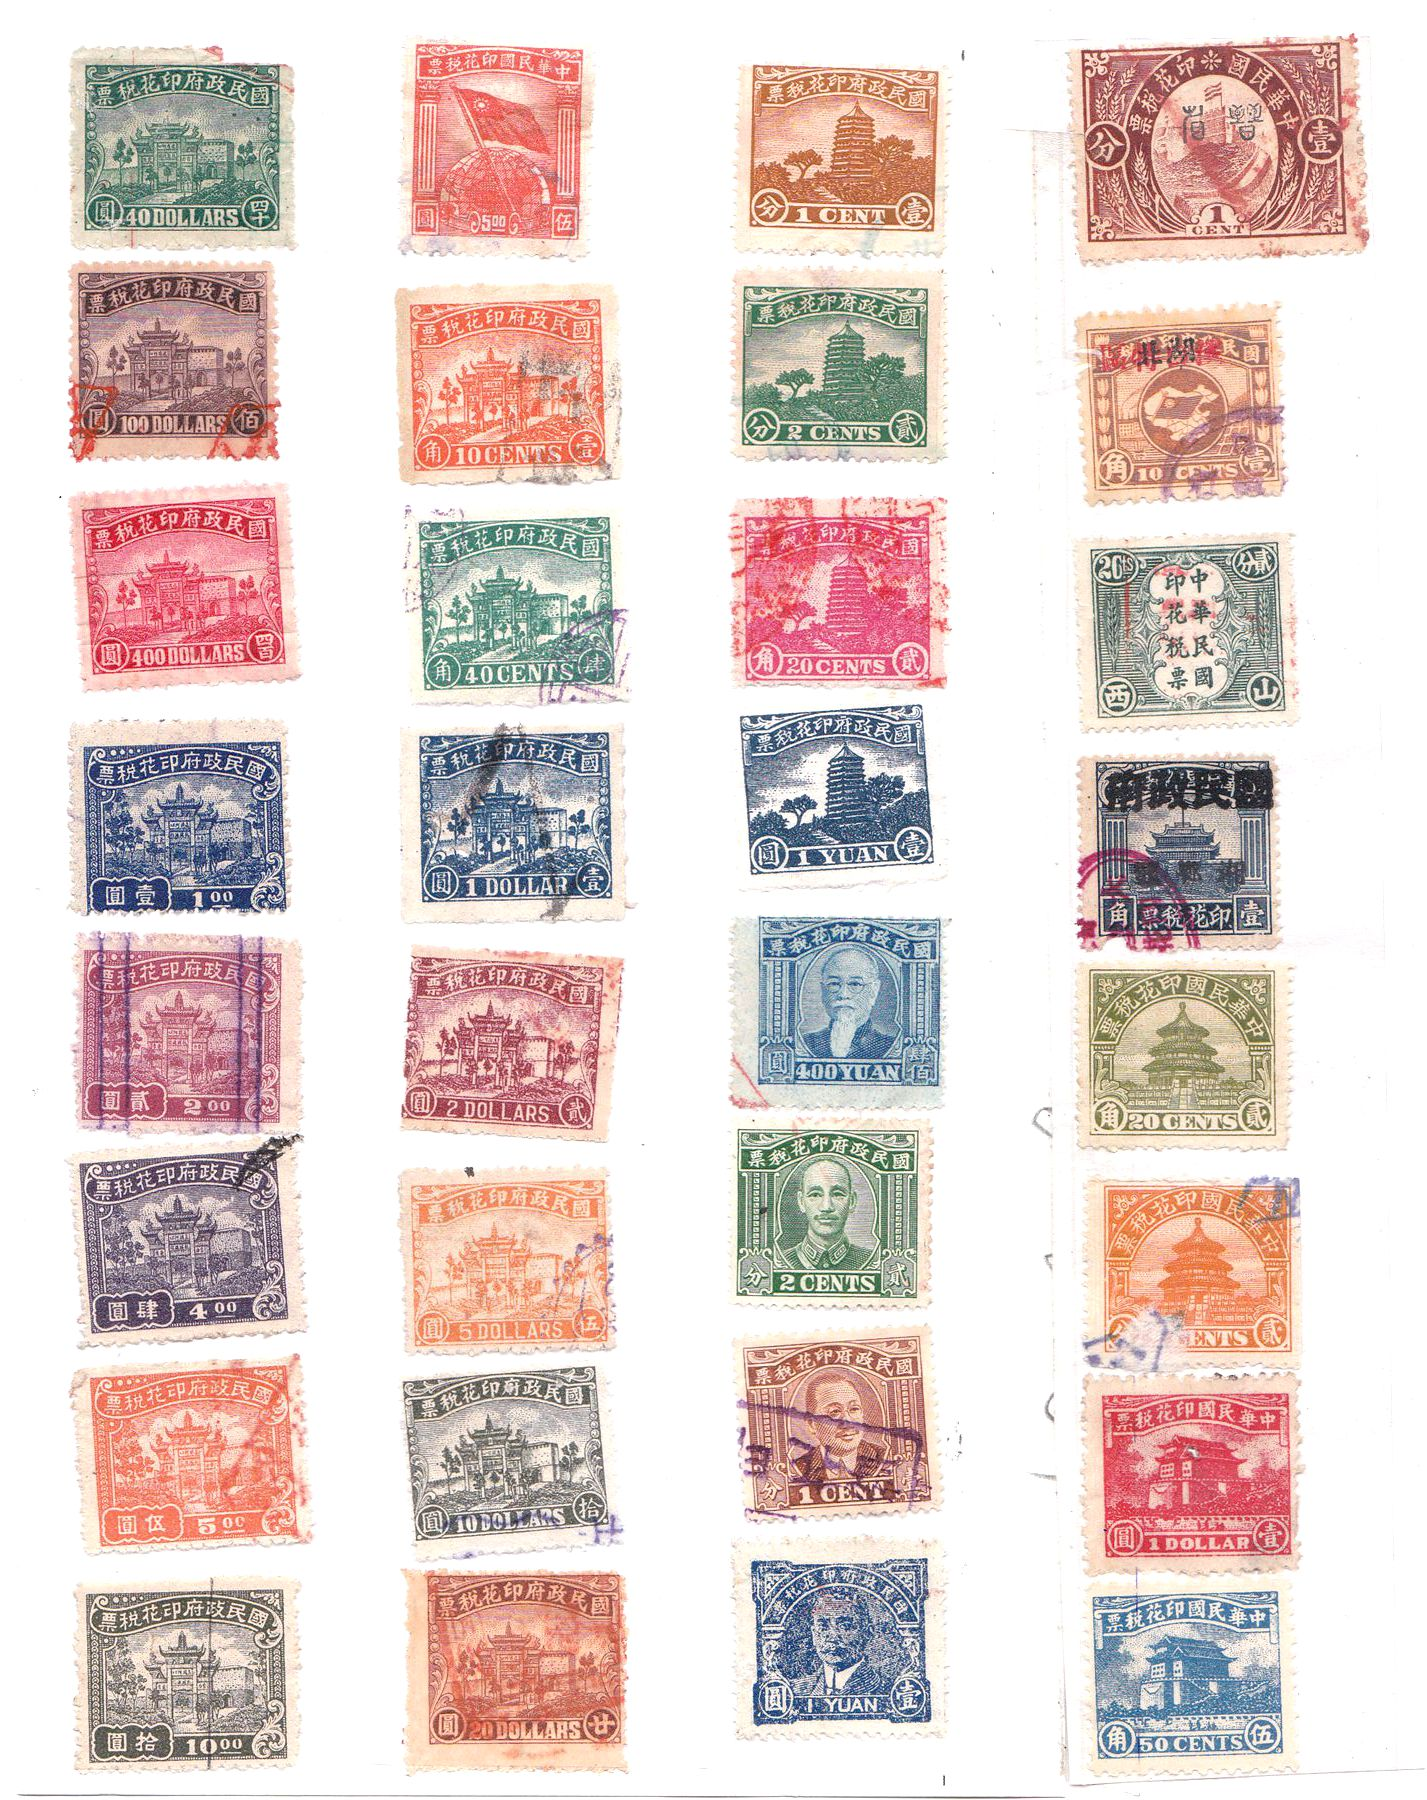 R1490, China 64 Pcs Different Revenue Stamps, 1912-1949 Wholesale